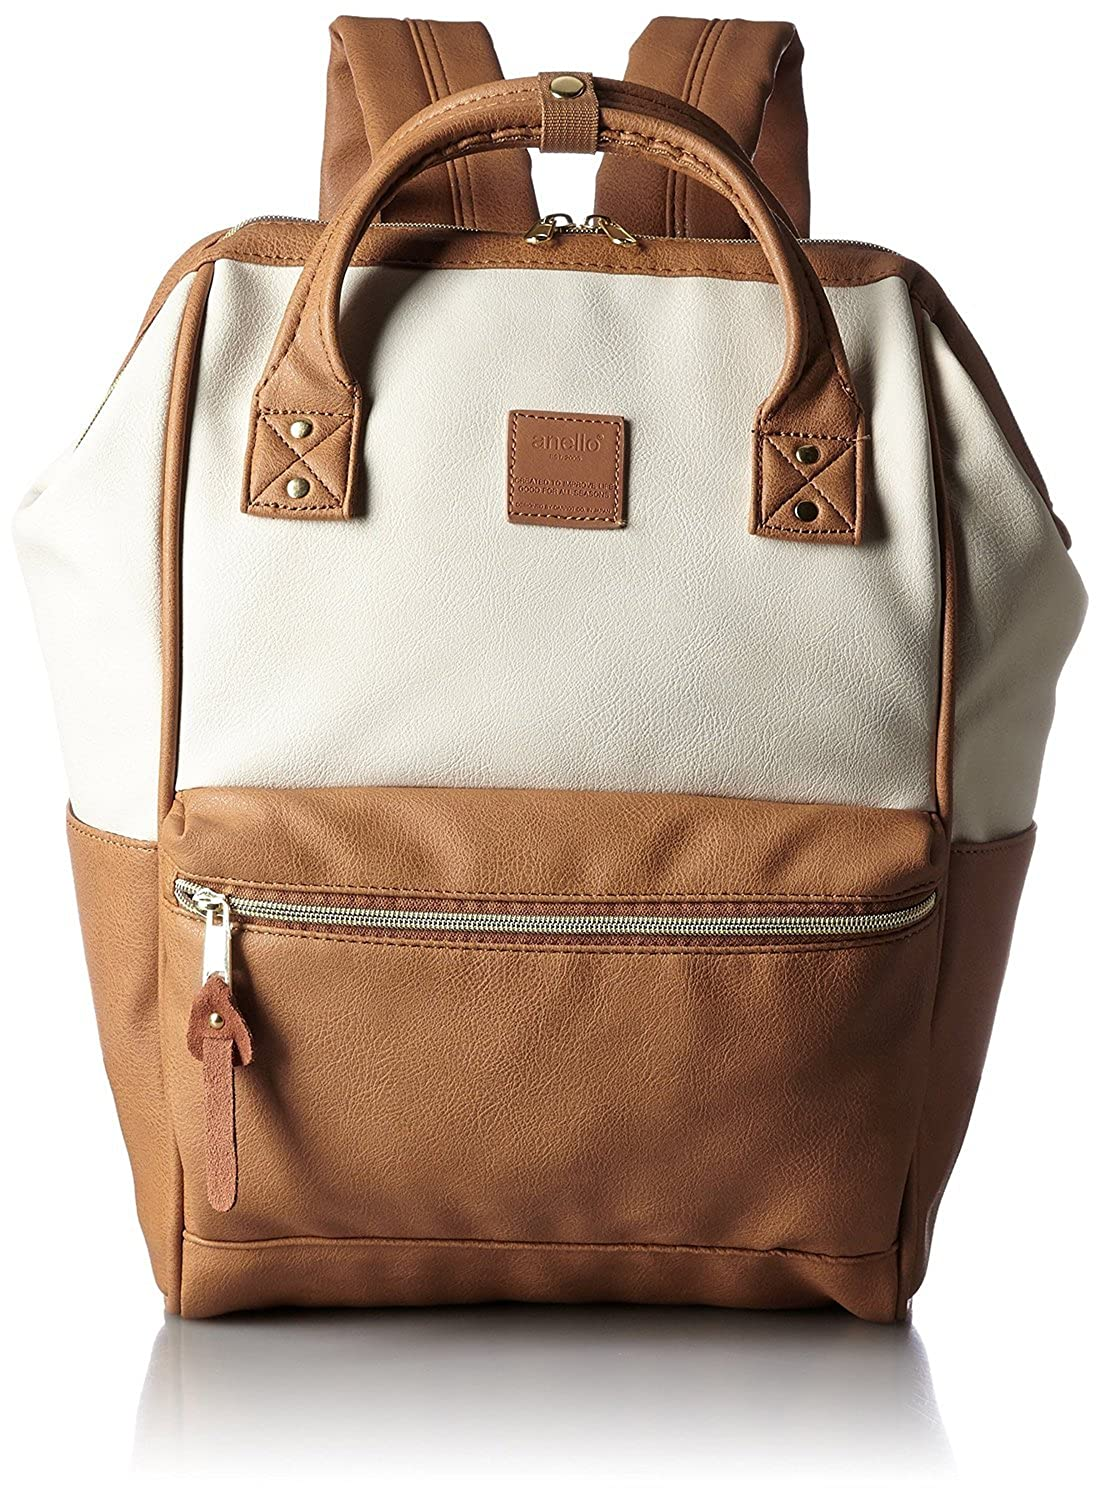 Anello Synthetic Leather Backpack Large with Japan Orignal Gift